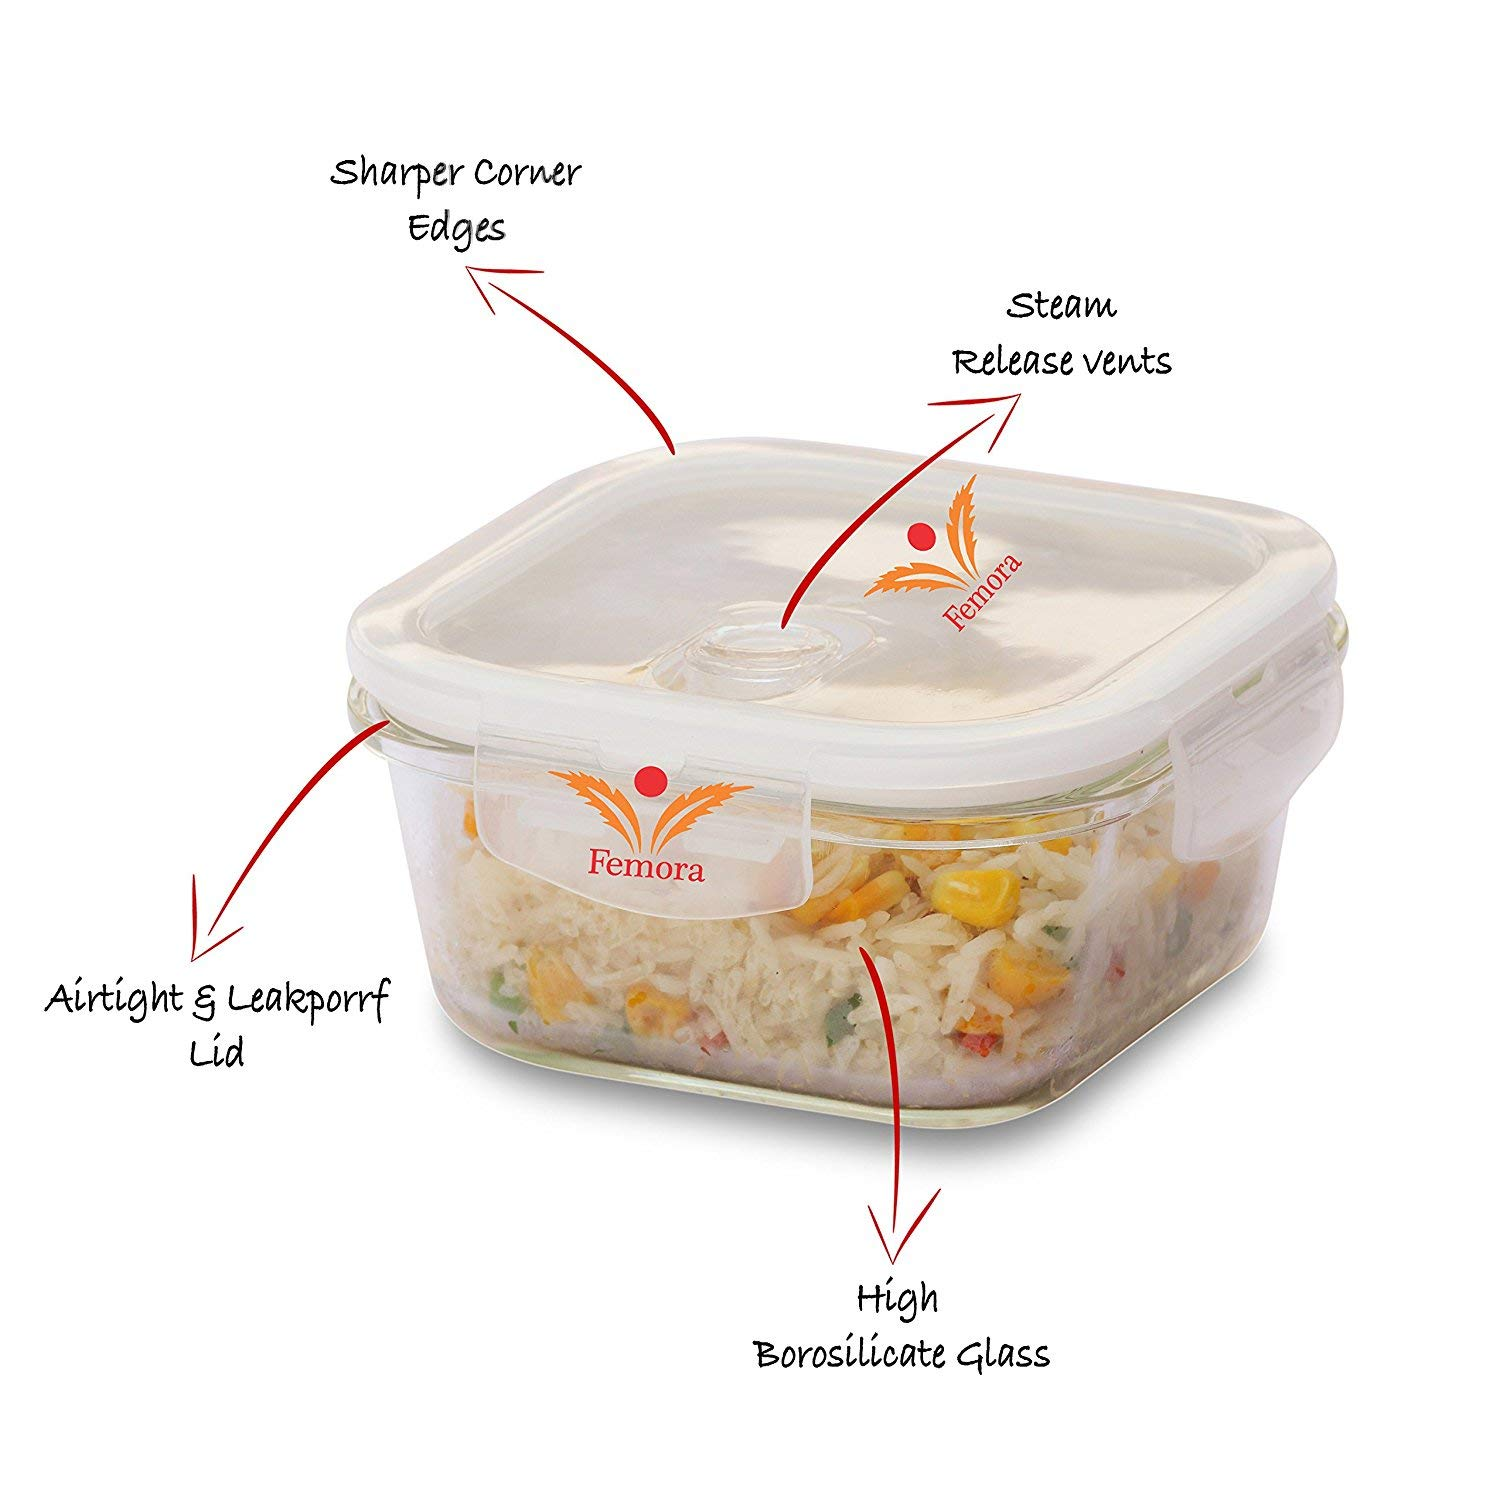 Femora Borosilicate Glass Round Container Beige Black Canvas Lunch Box-380 ML X2, Set of 2, 1 Year Warranty